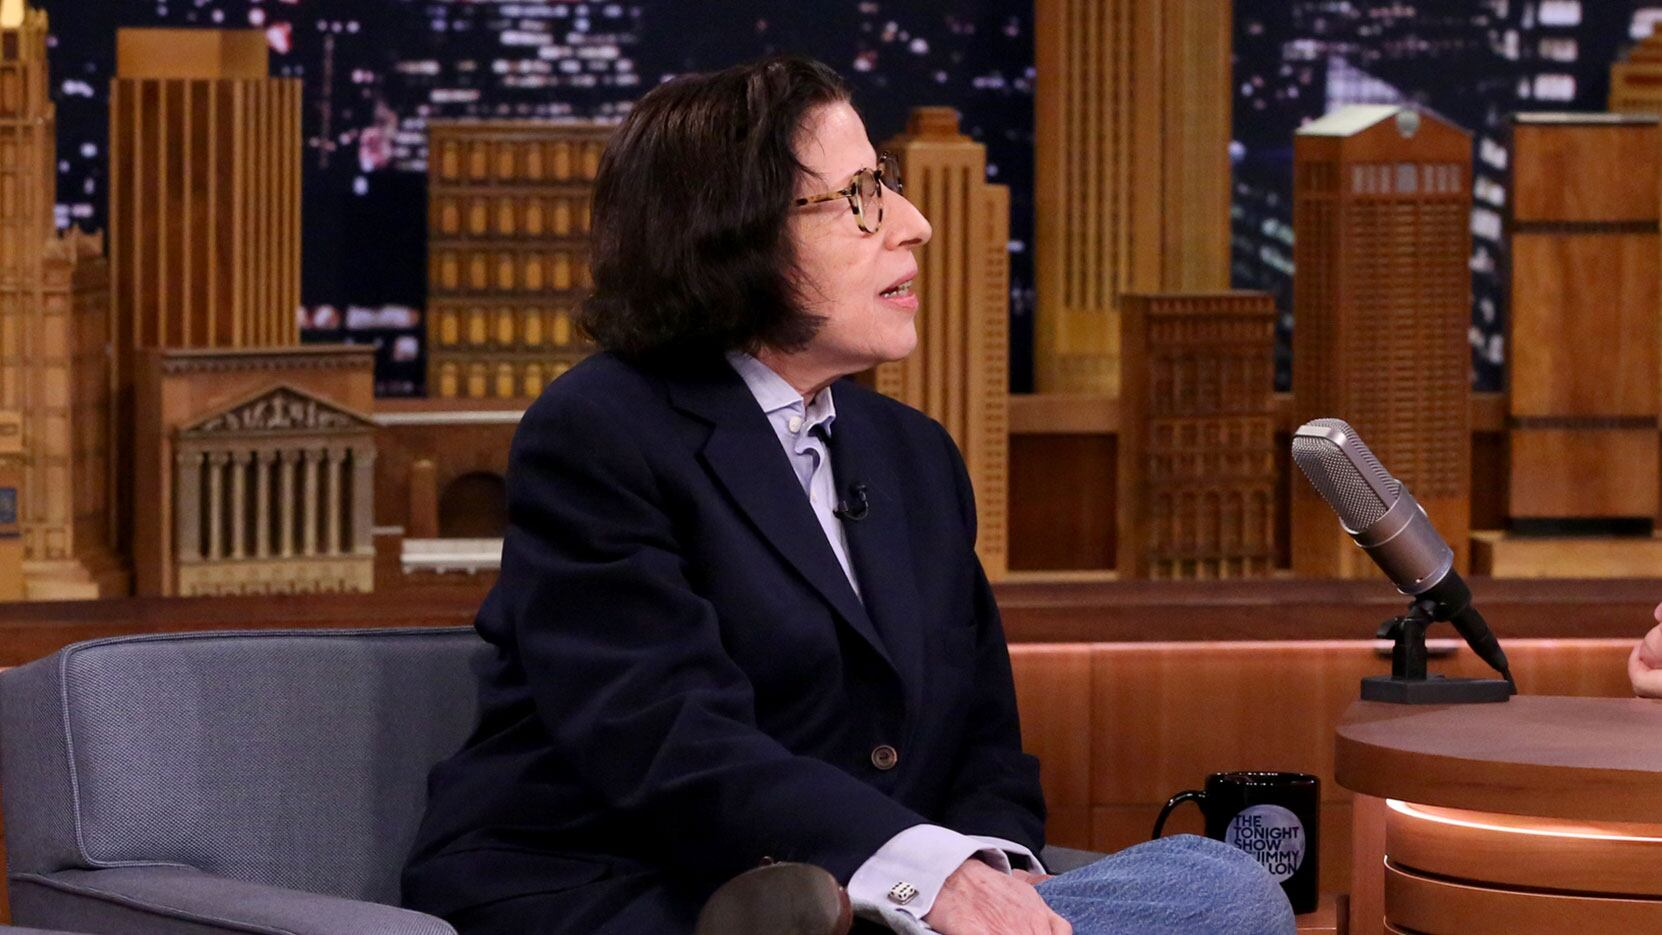 Fran Lebowitz Is the Ideal New Yorker